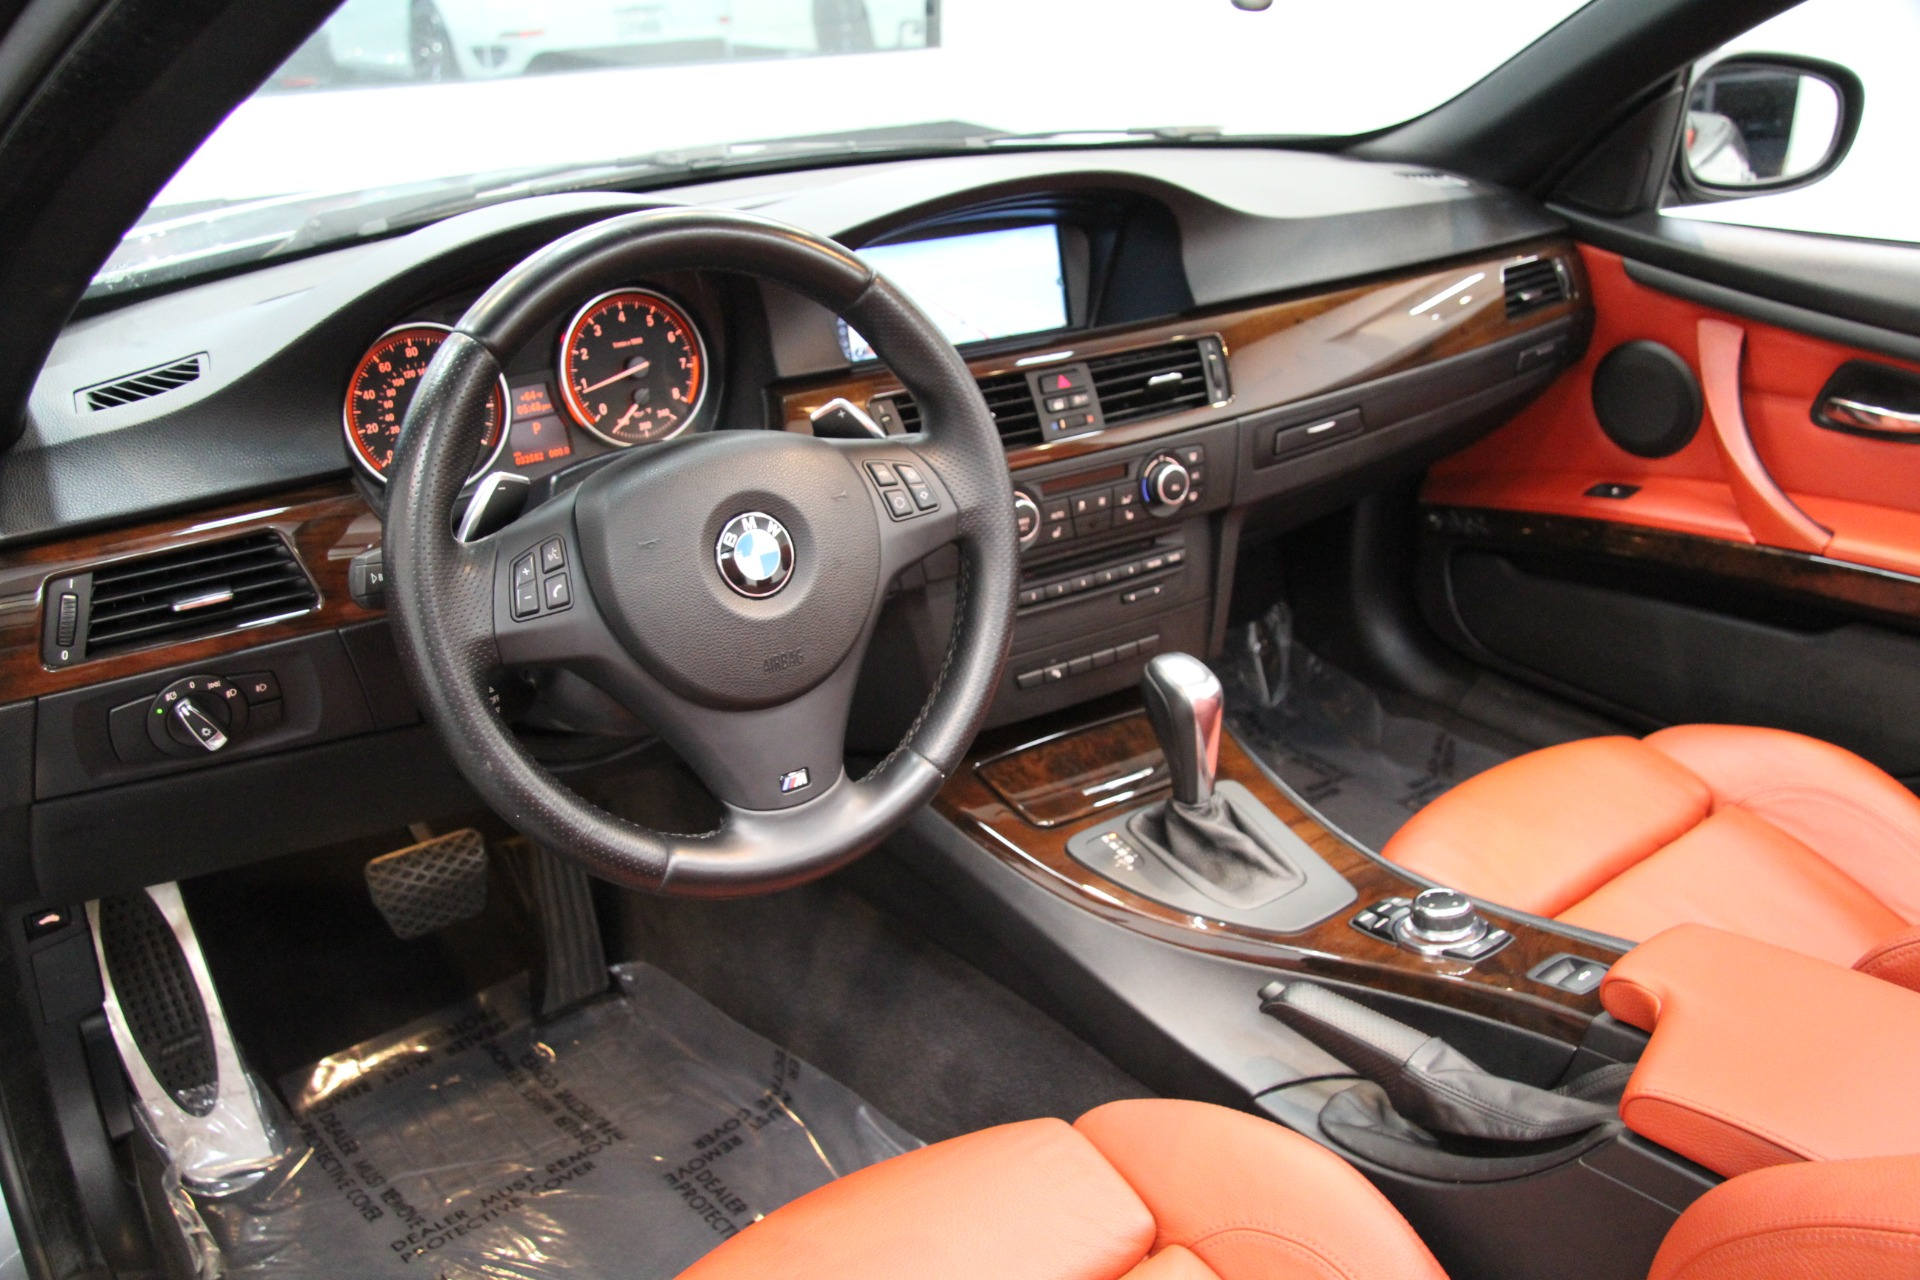 Bmw Dealership Near Me >> 2013 BMW 3 Series 328i *** M SPORT PACKAGE *** Stock # 6054B for sale near Redondo Beach, CA ...